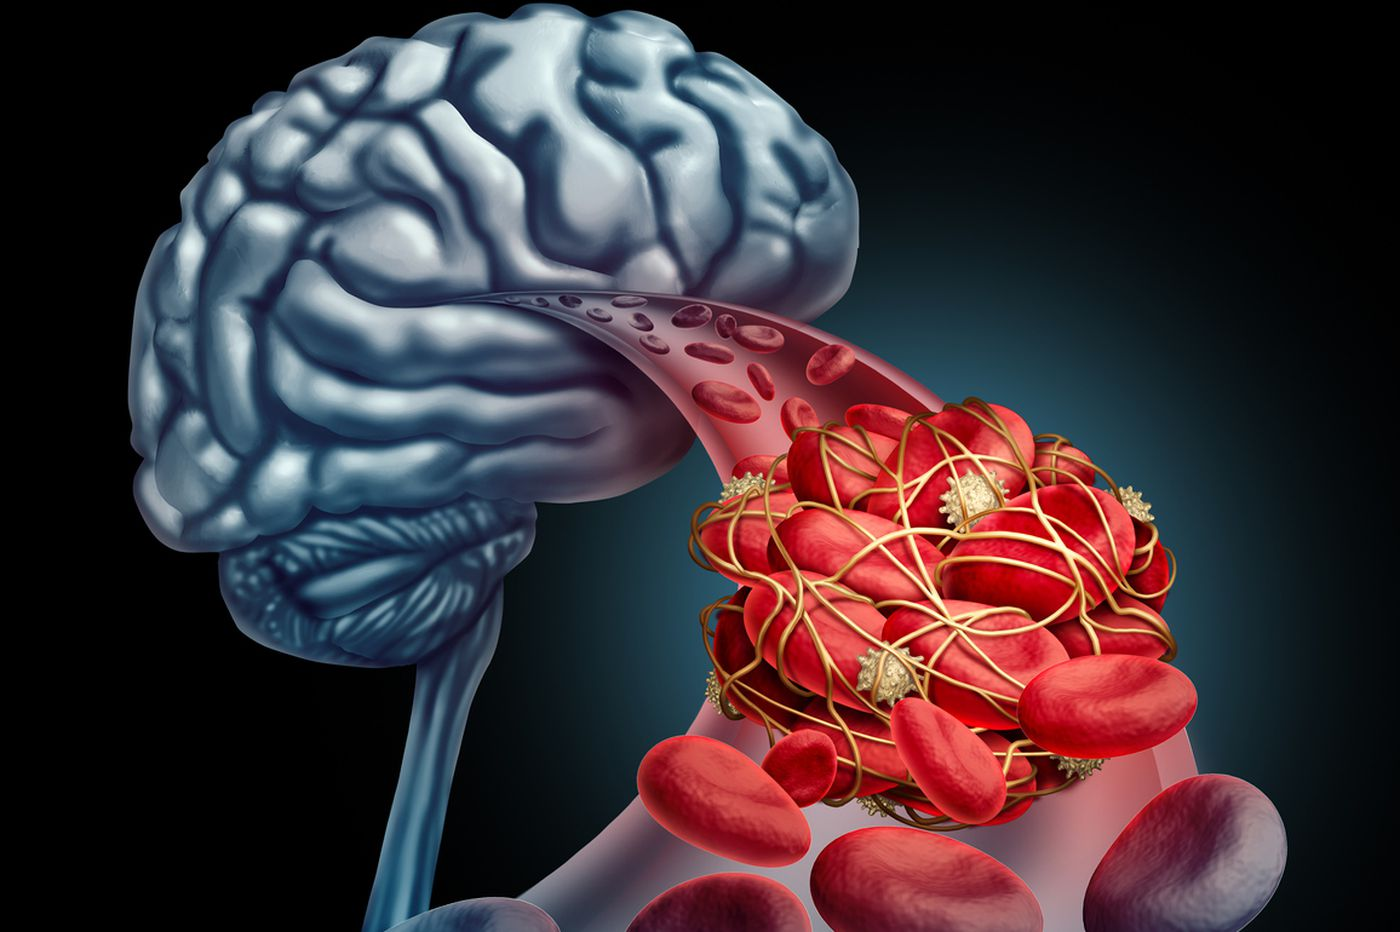 Q&A: Treatment options for stroke